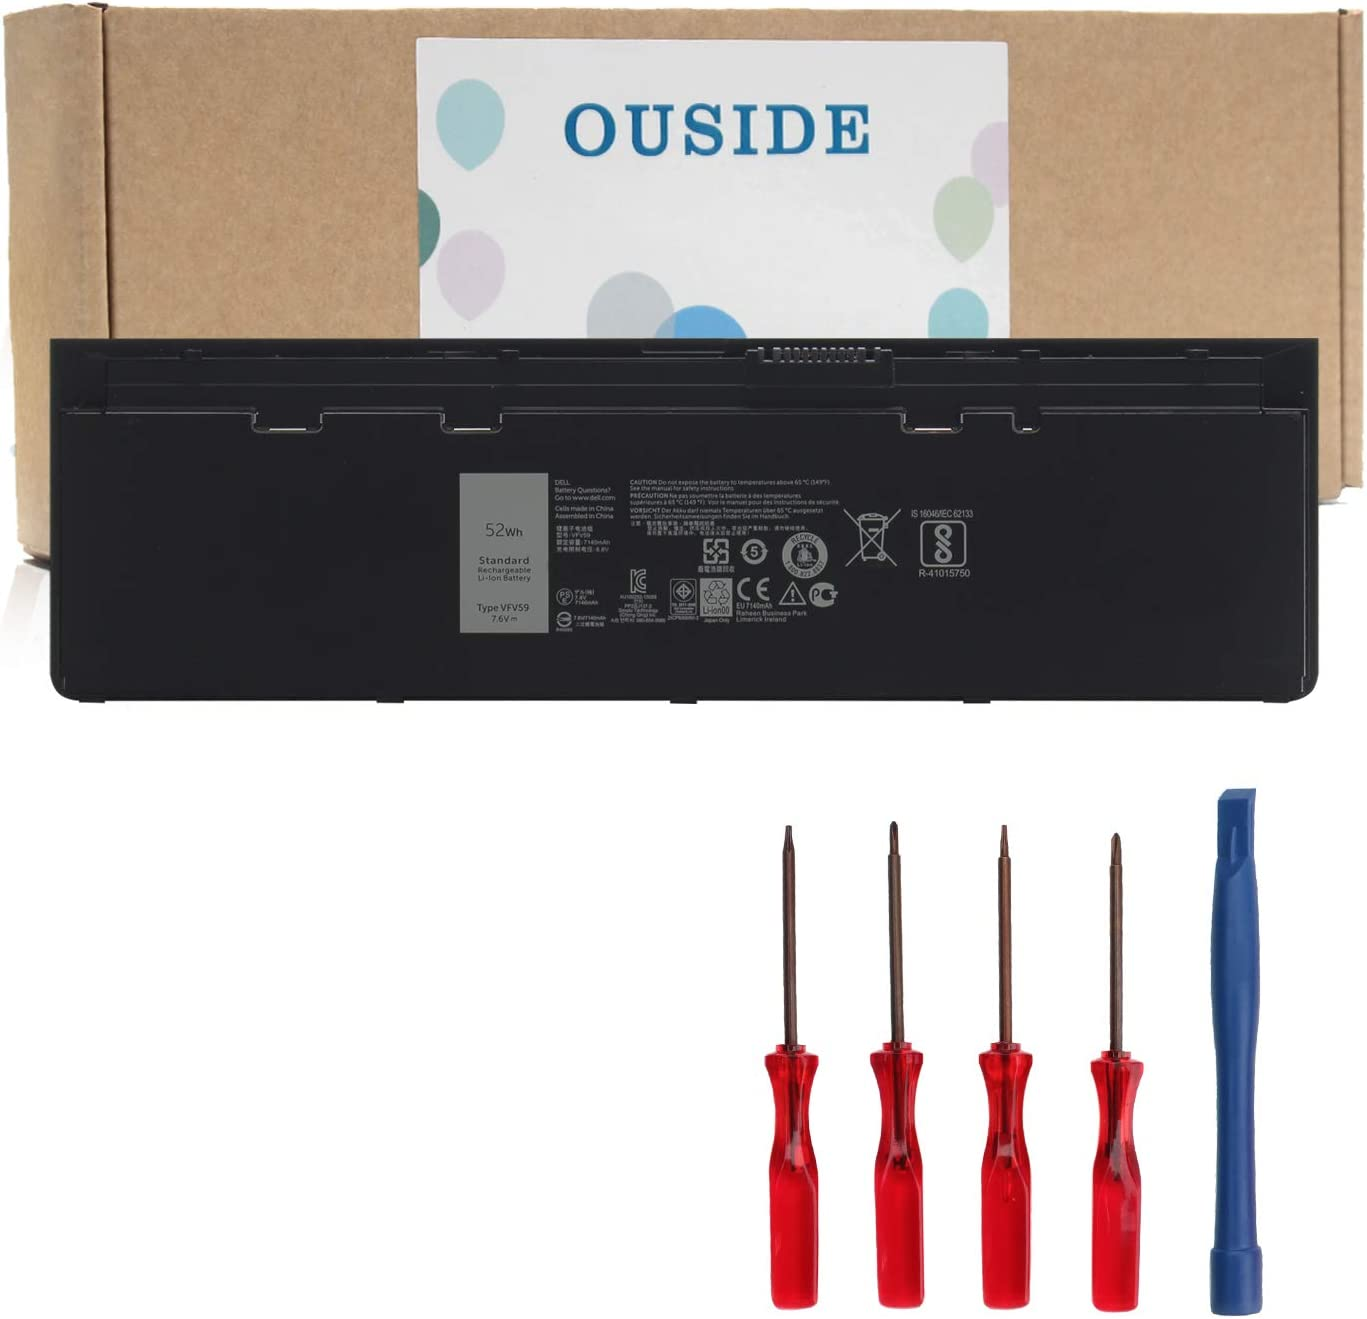 OUSIDE VFV59 Laptop Battery OEM Compatible with Dell Latitude E7240 E7250Series Notebook GVD76 WD52H F3G33 HJ8KP W57CV 451-BBFX 451-BBFW Battery Replacement [7.4V 52Wh/4Cell]